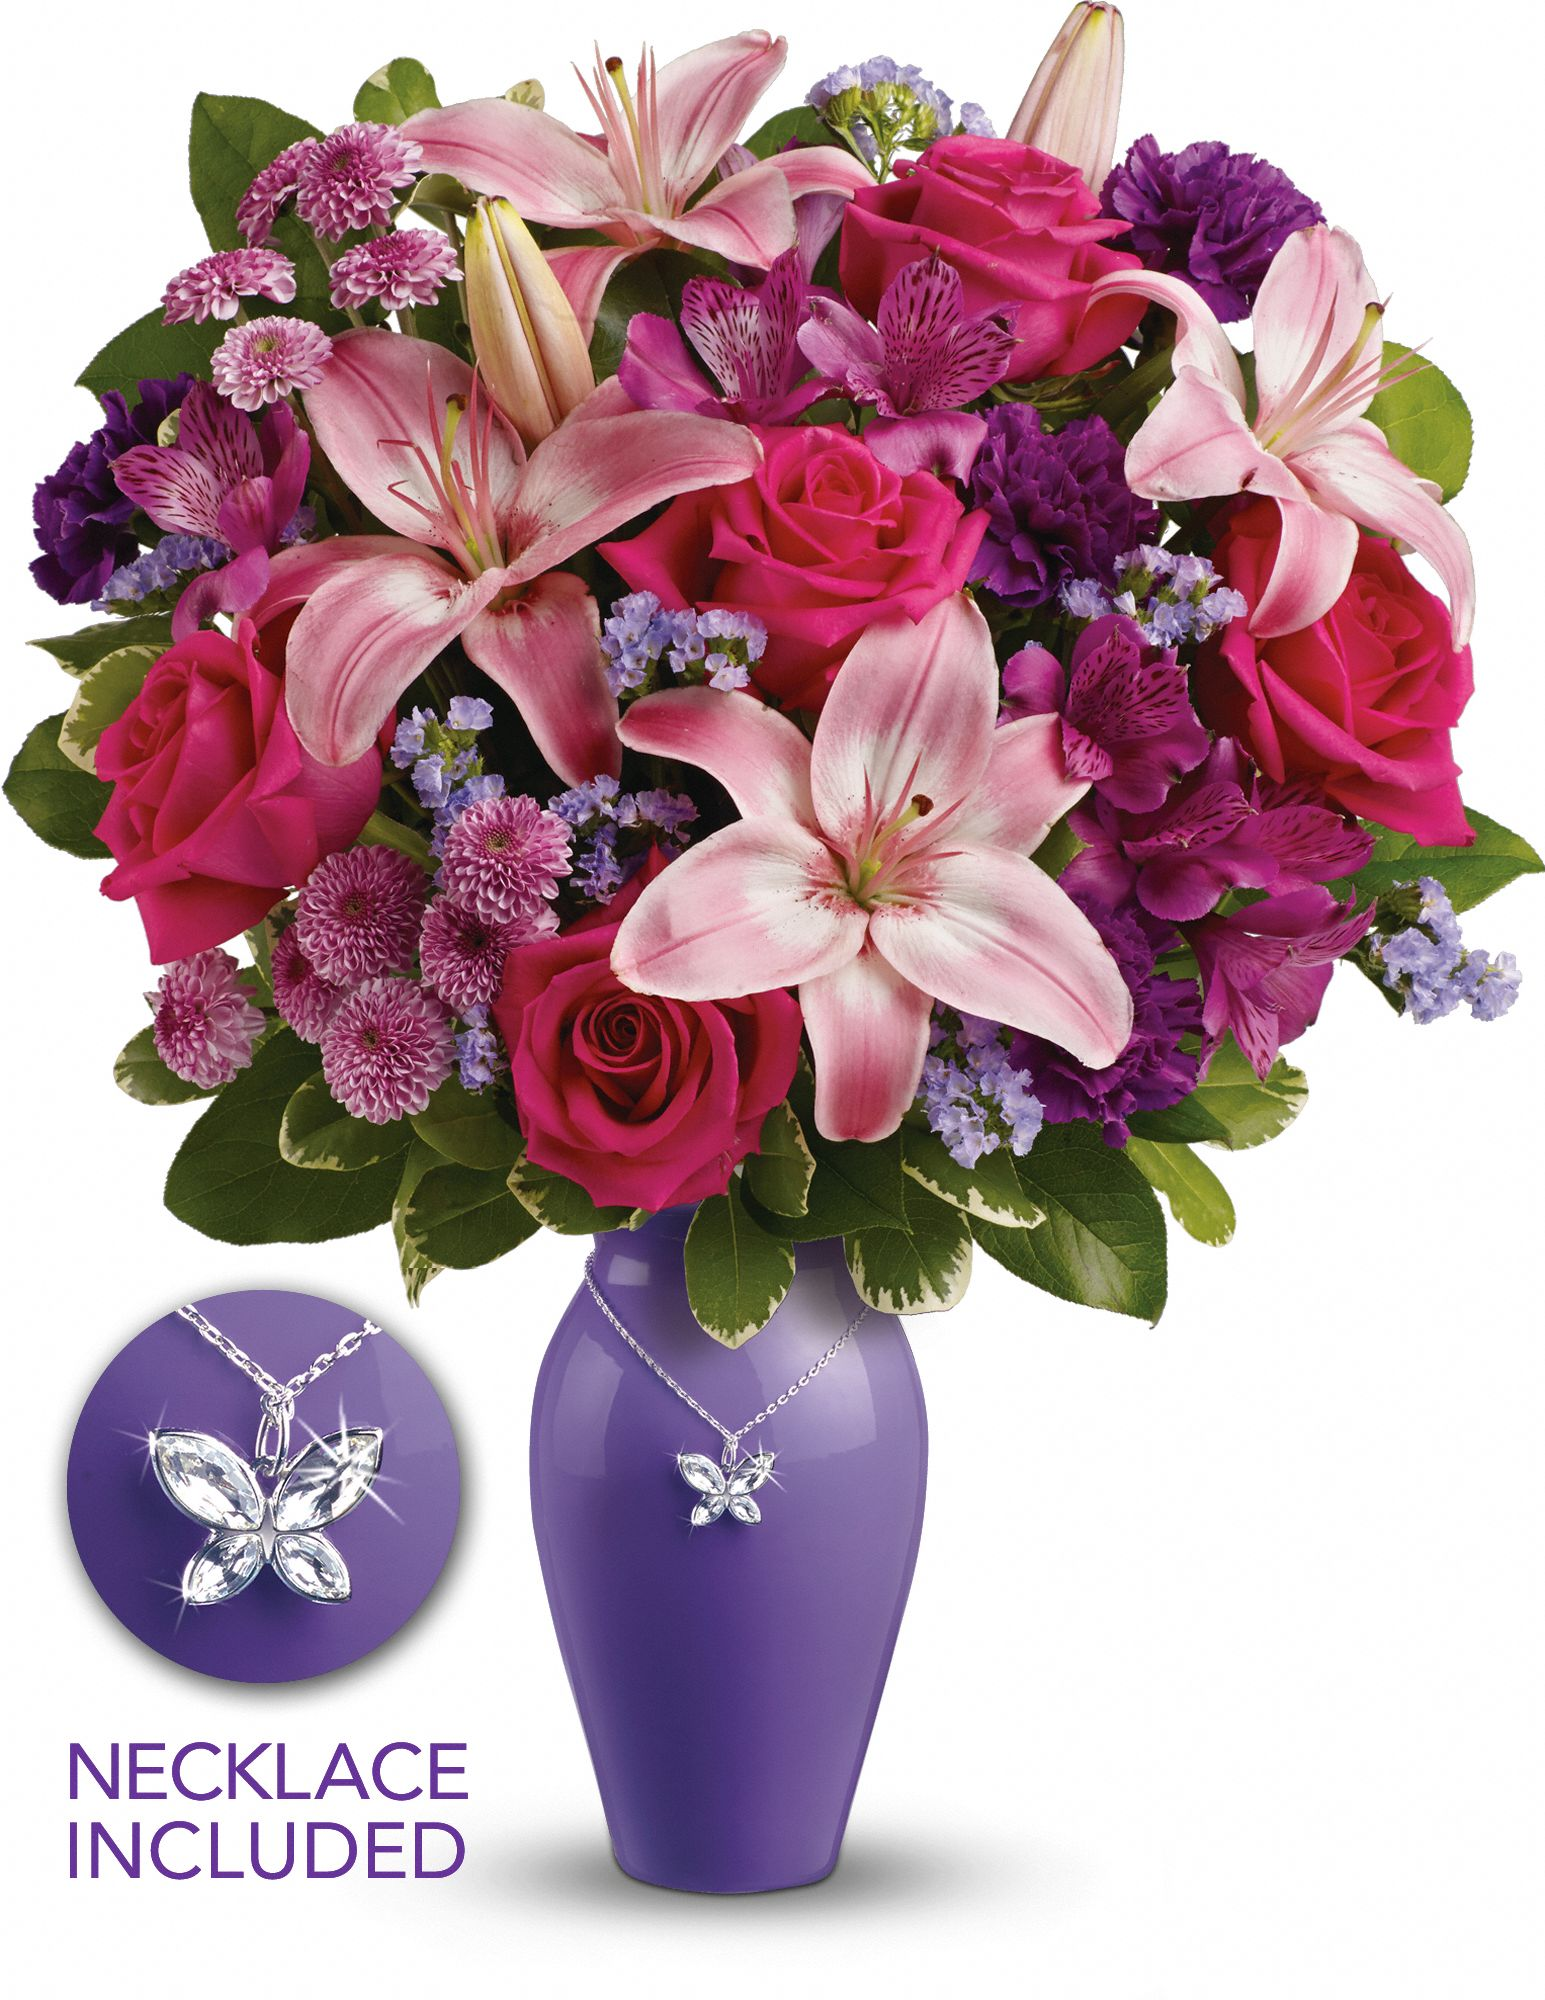 flowers in a hand-glazed ceramic vase with a butterfly charm on a silver-plated chain